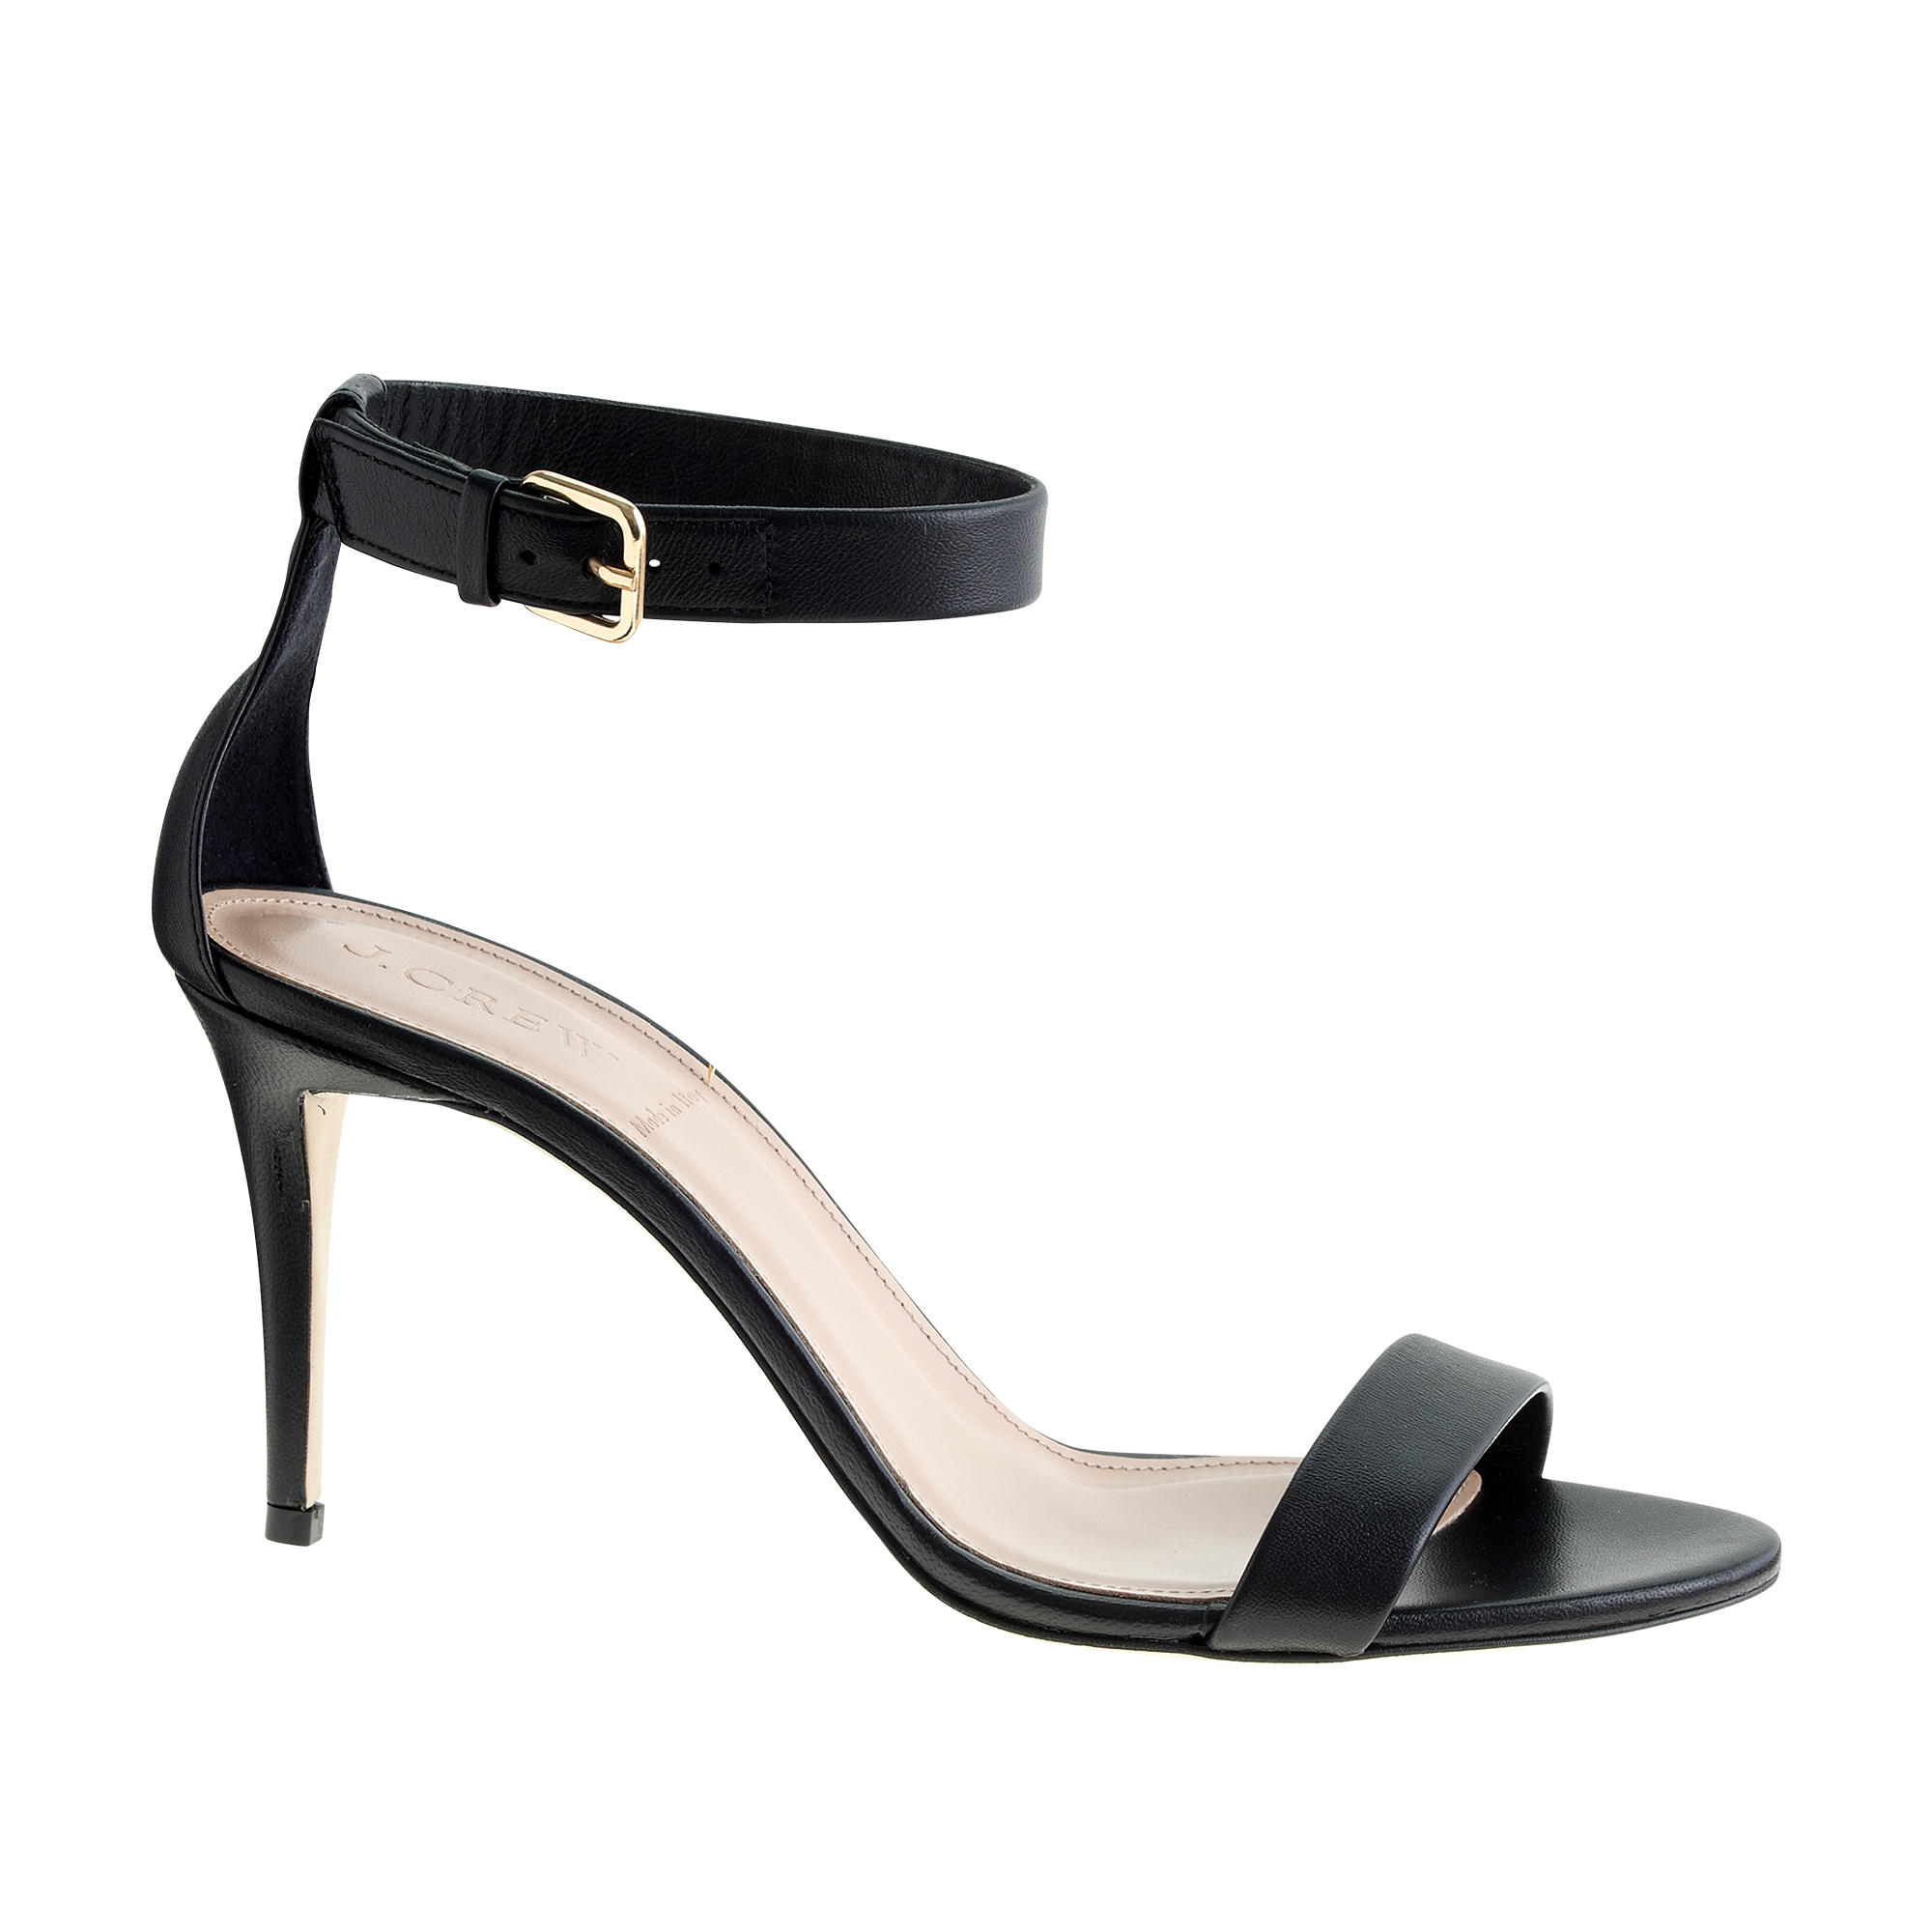 Step out in style when you slip into these super comfortable ankle strap sandals with a thick hemp underside bottom and ridged rubber soles for a stable step without skidding. The toe portion of the sandal is made of a wide section of suede covering the top of the foot but leaving the toes exposed. Women's Black High Heels - Gray Toe Belt.